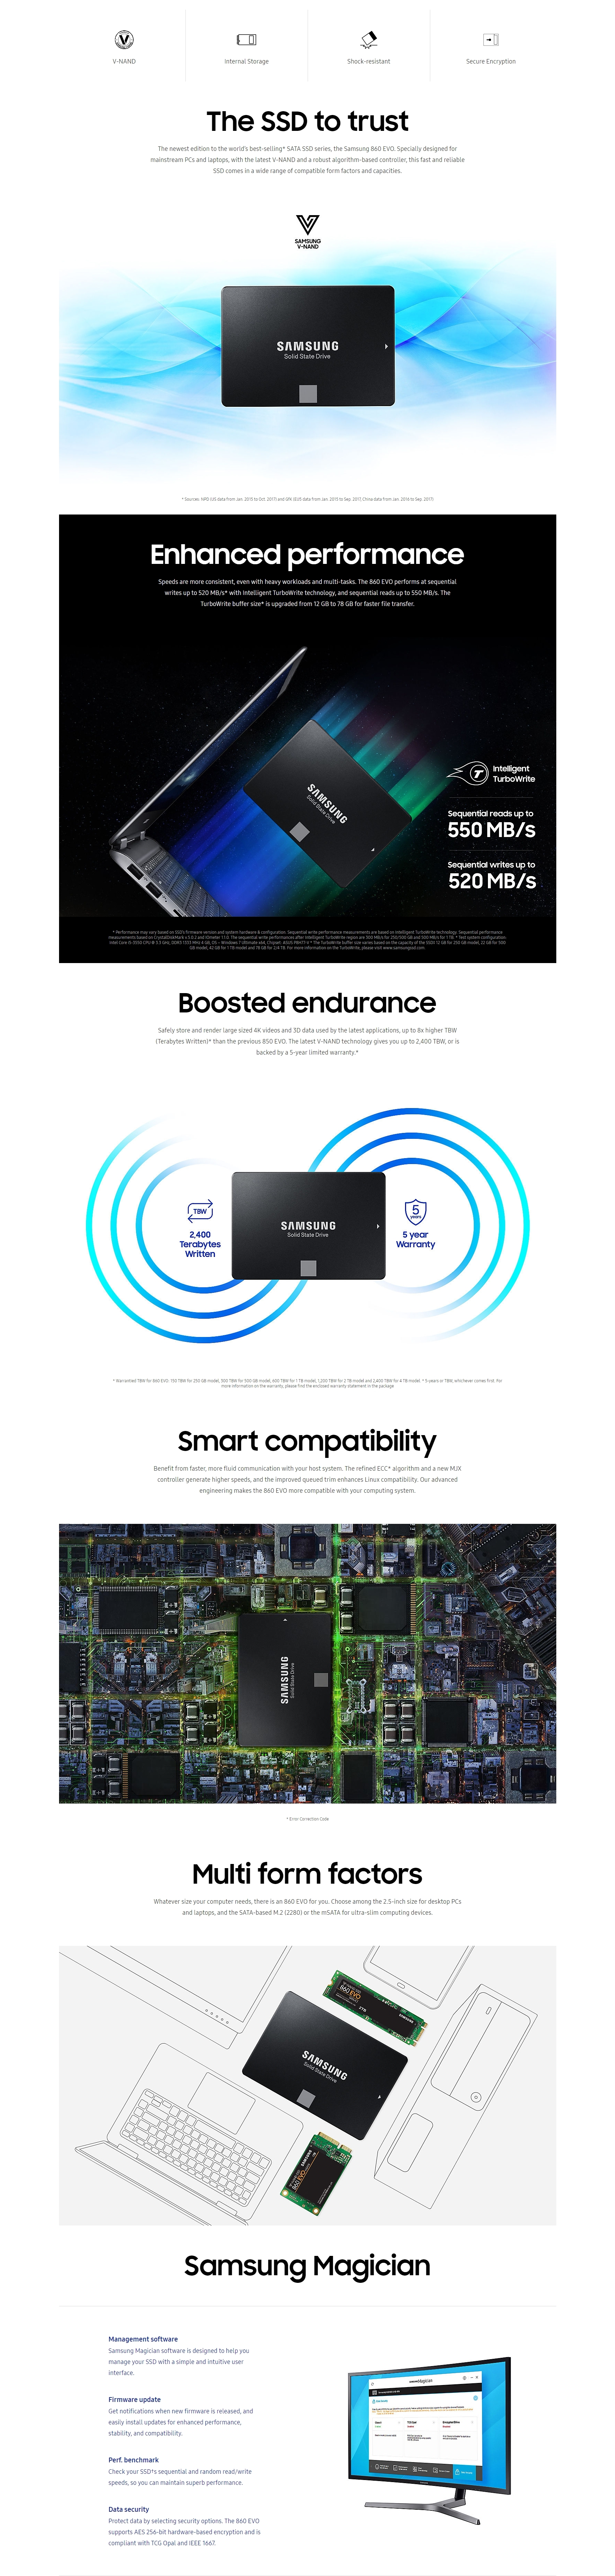 A large marketing image providing additional information about the product Samsung 860 EVO Series 250GB M.2 SSD - Additional alt info not provided